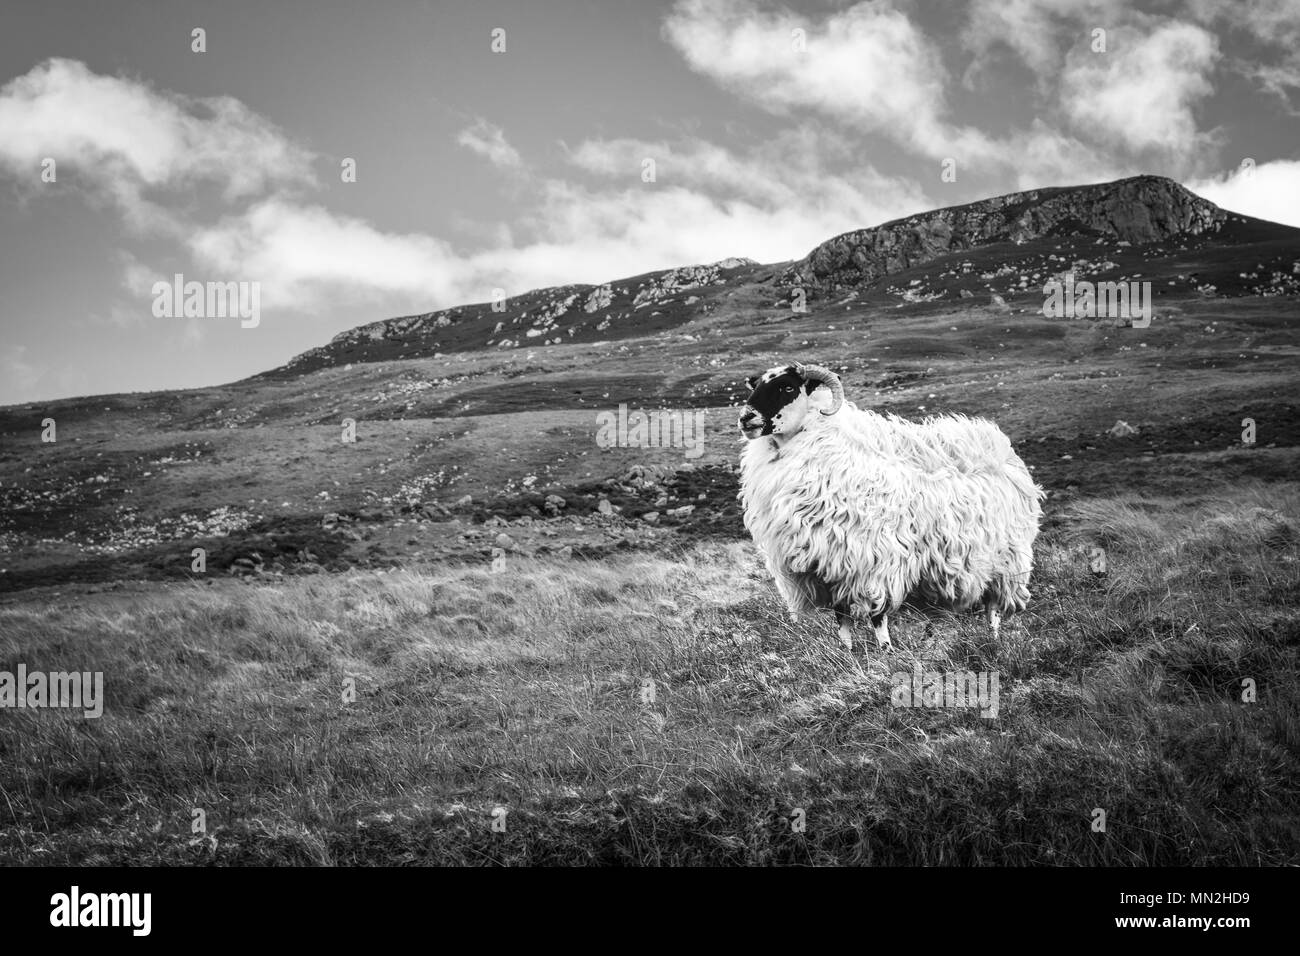 Picture of a sheep on a mountain in Donegal Ireland - Stock Image